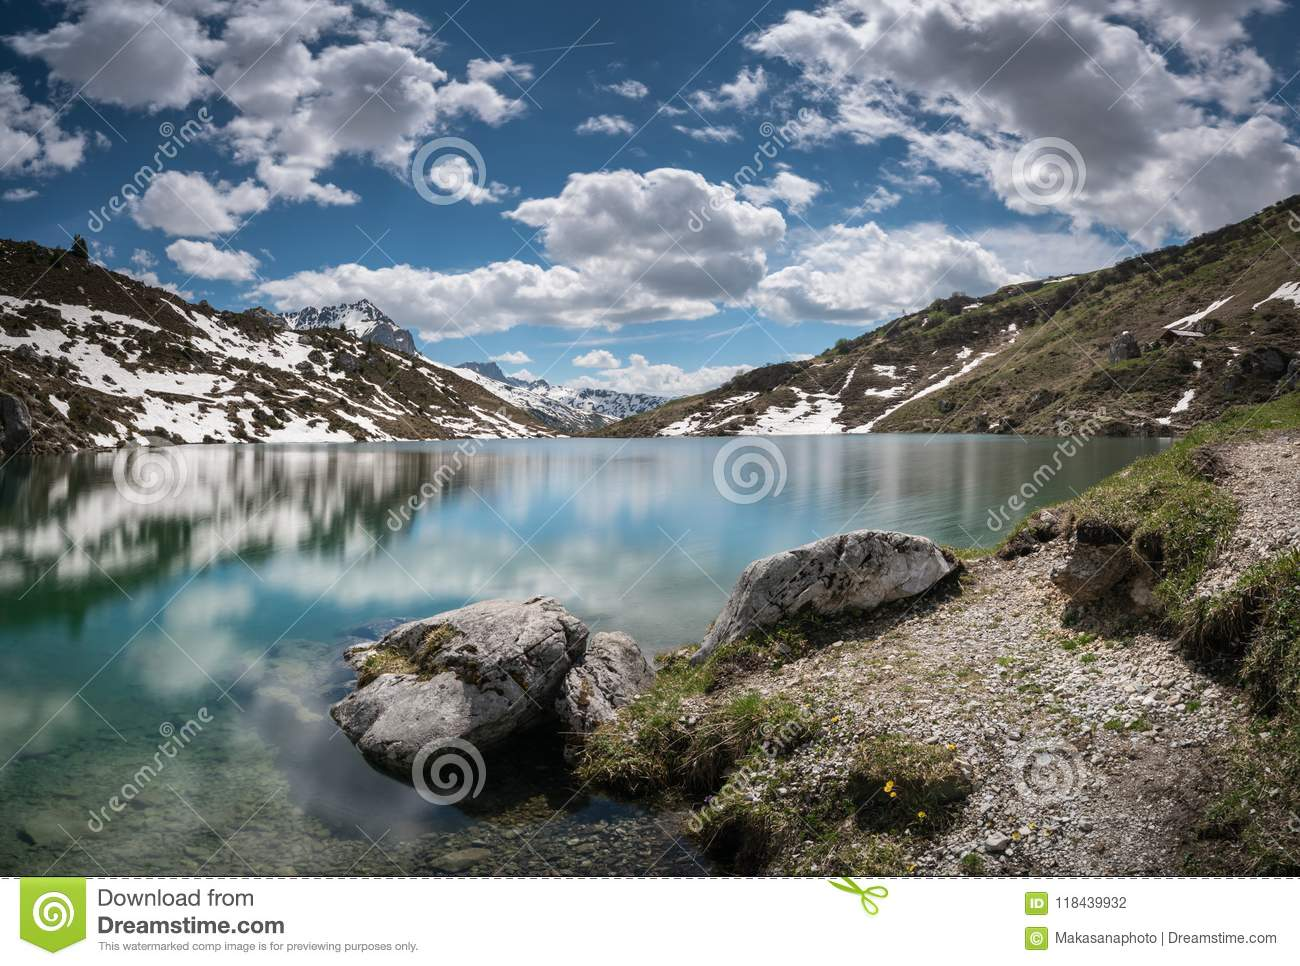 Gorgeous mountain lake in the Alps with reflections and snow remnants